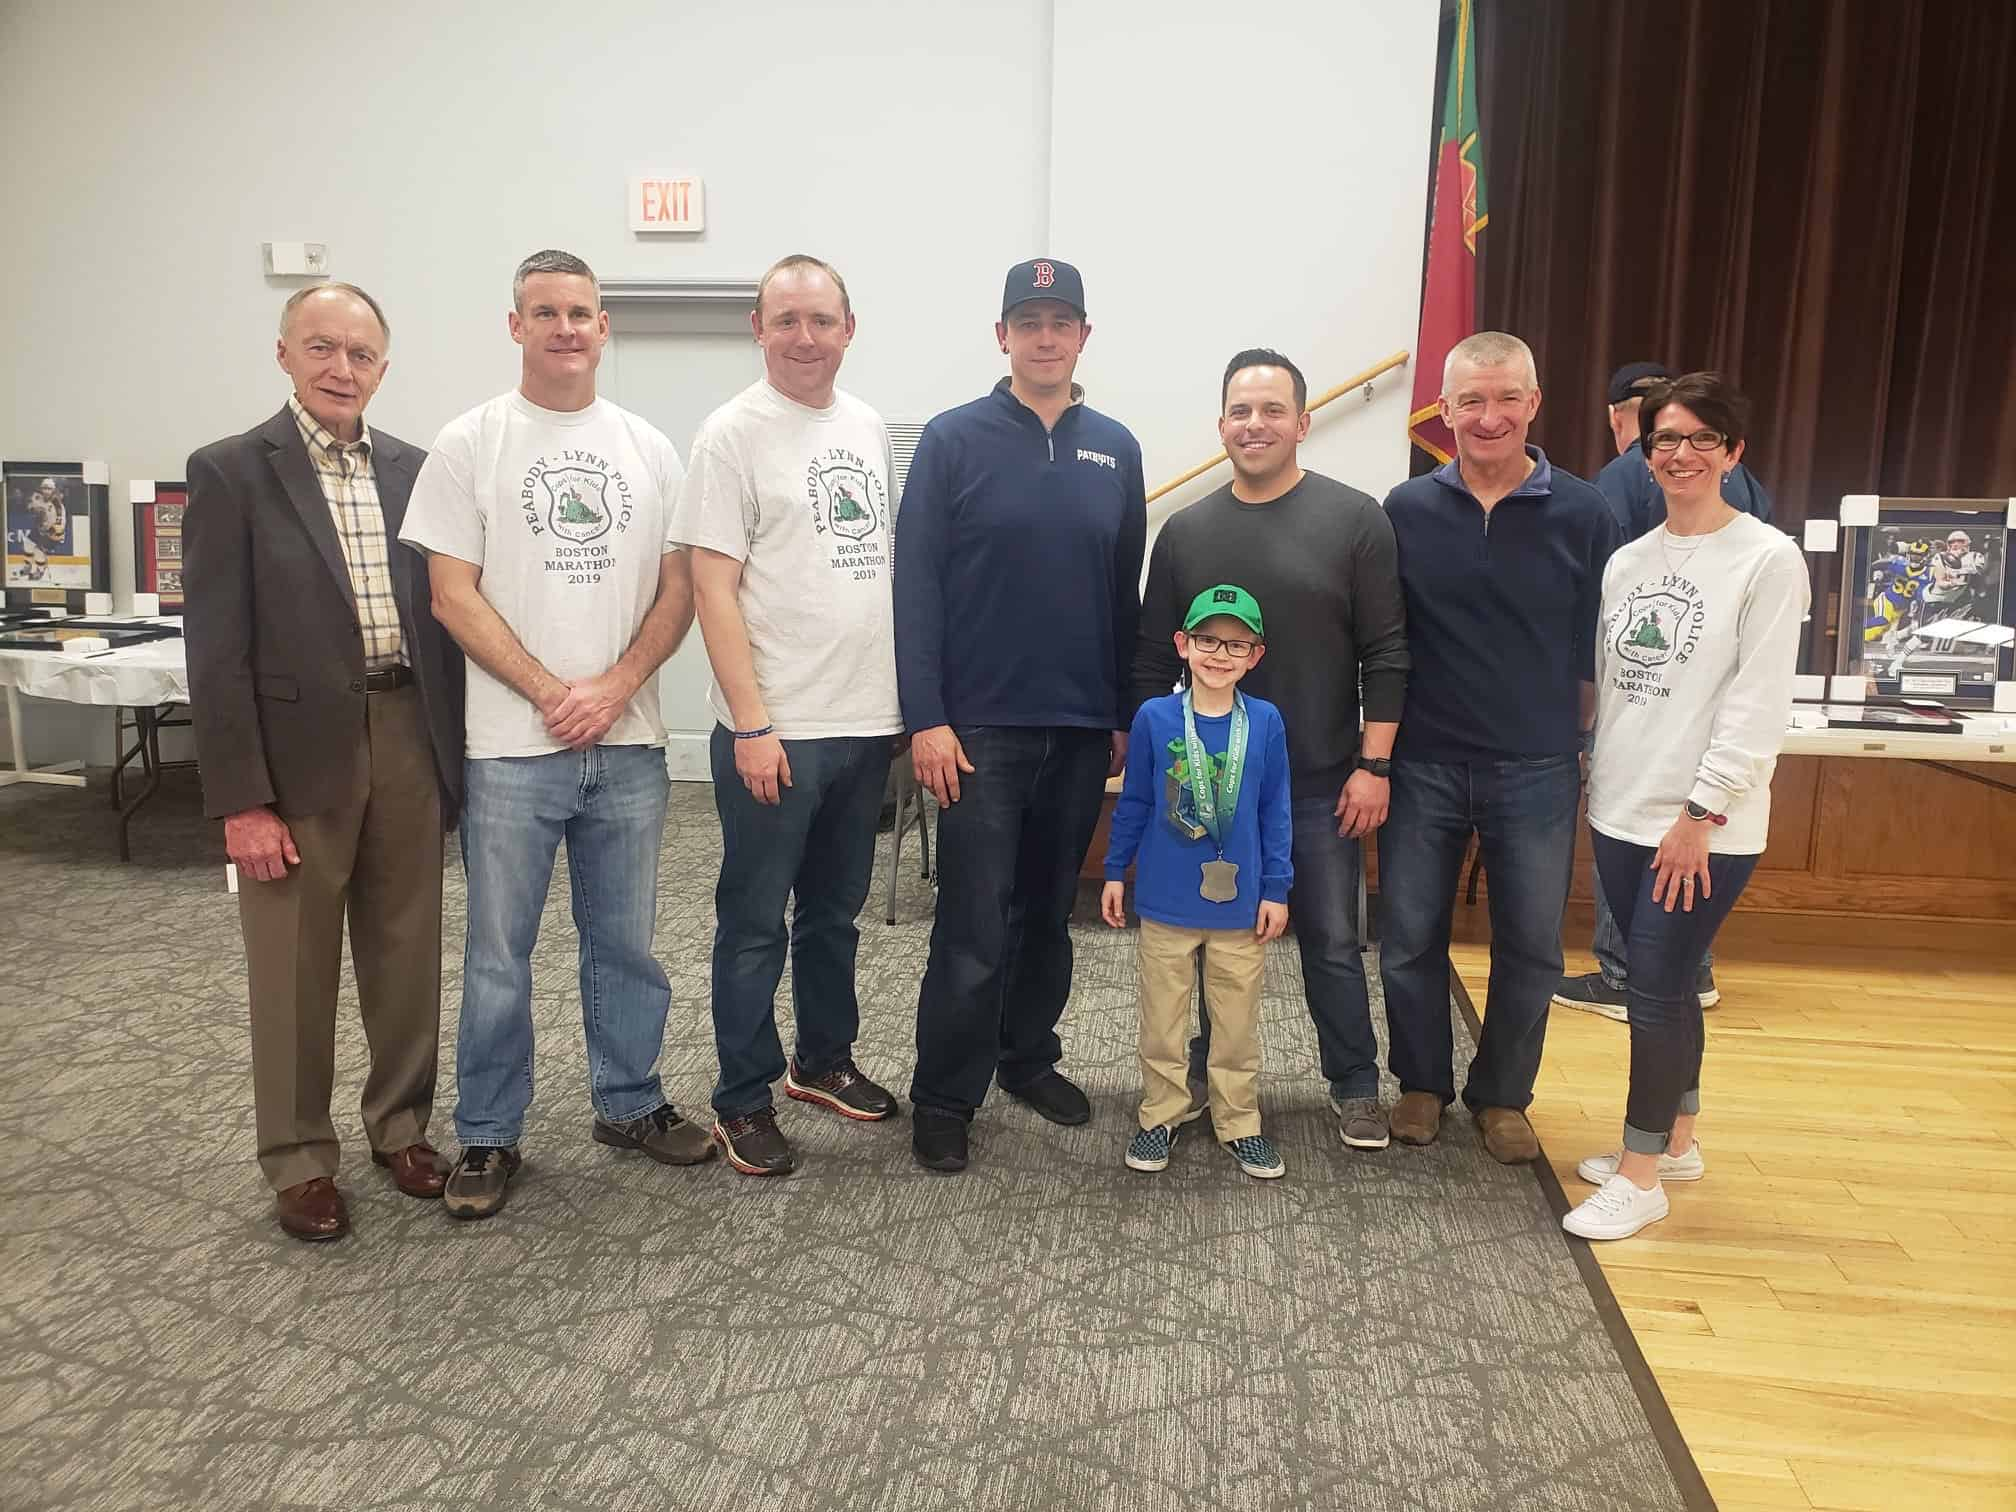 $5,000 Donation to 6 yr. old Cian Byrne